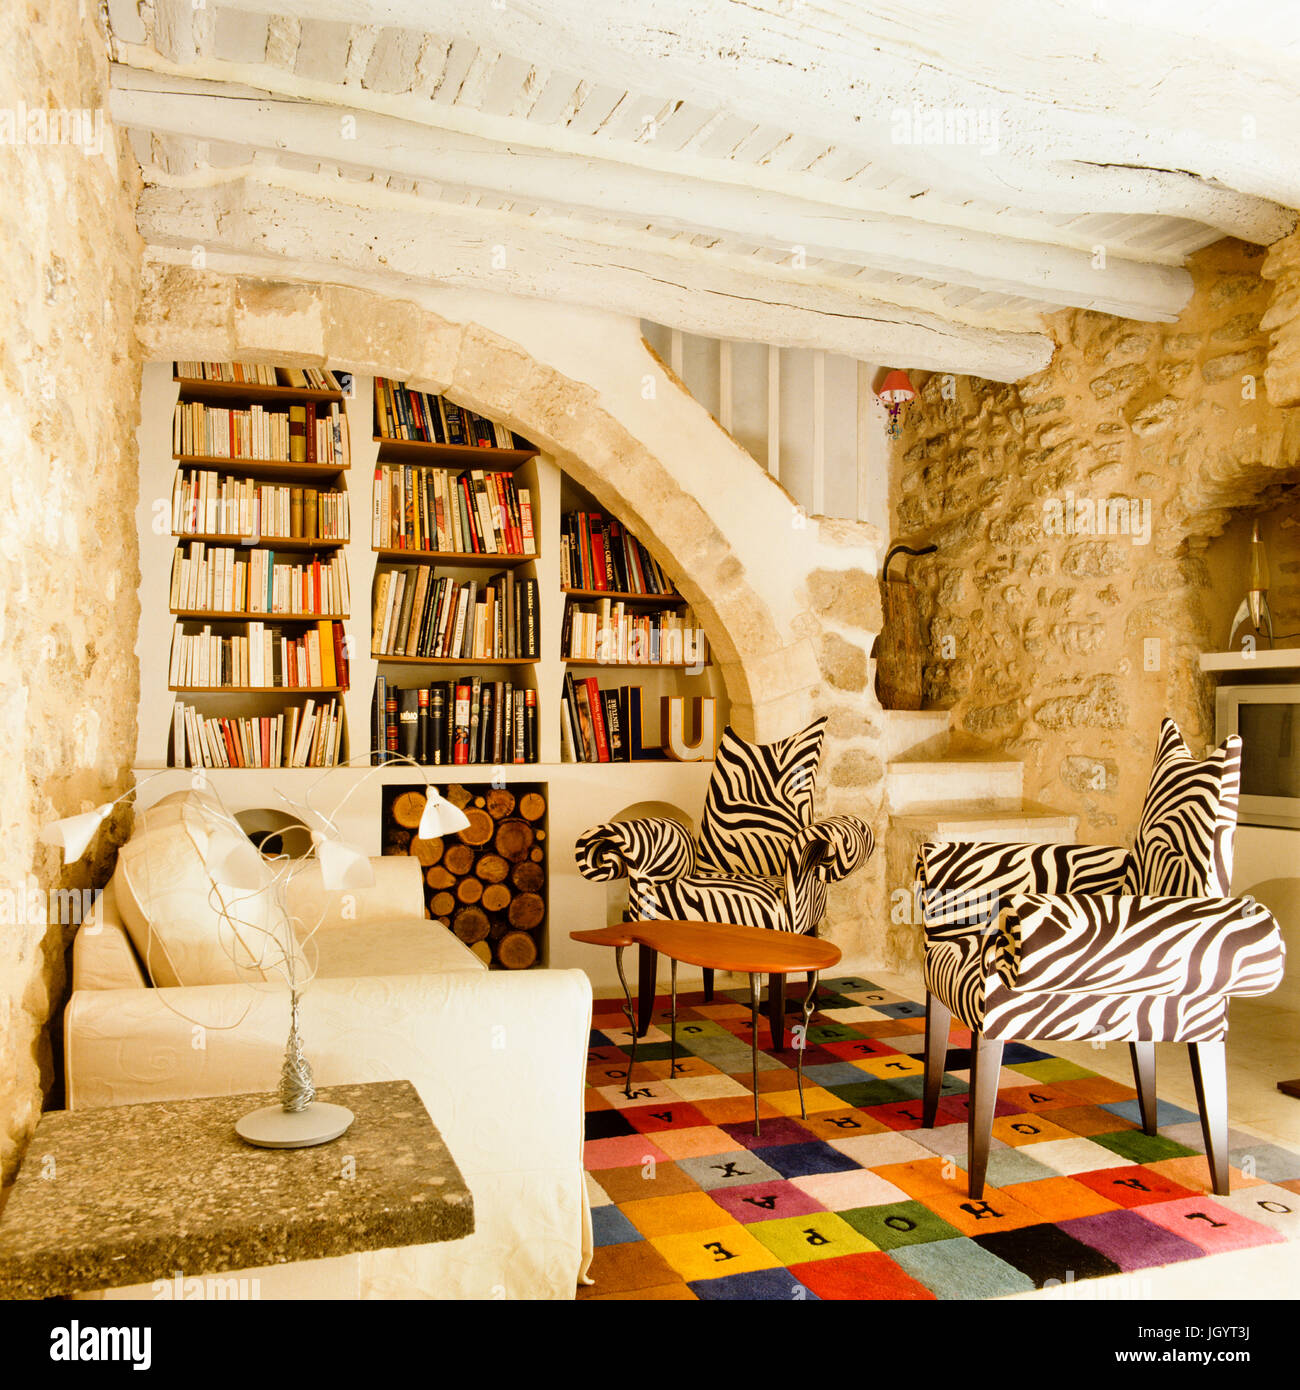 Zebra armchairs in a rustic living room - Stock Image